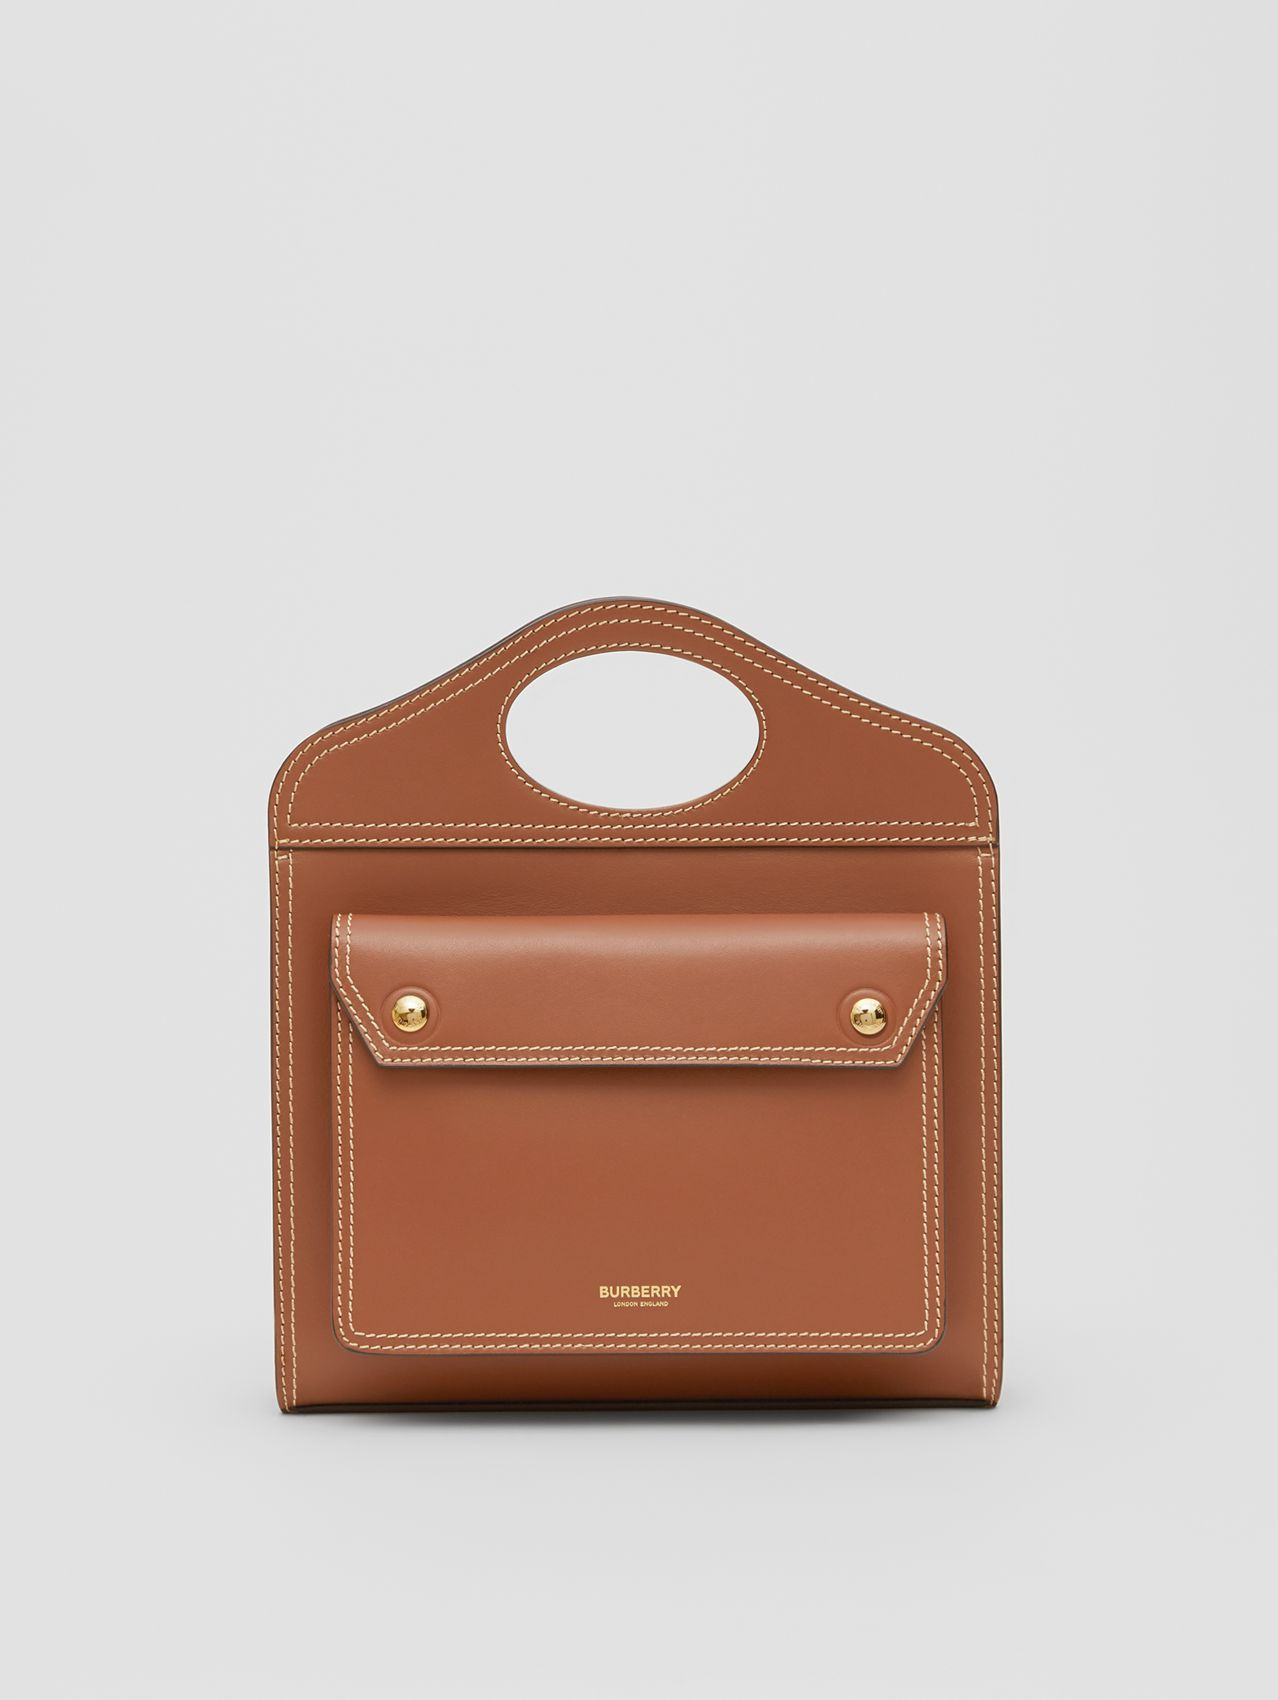 Mini Topstitched Leather Pocket Bag in Malt Brown